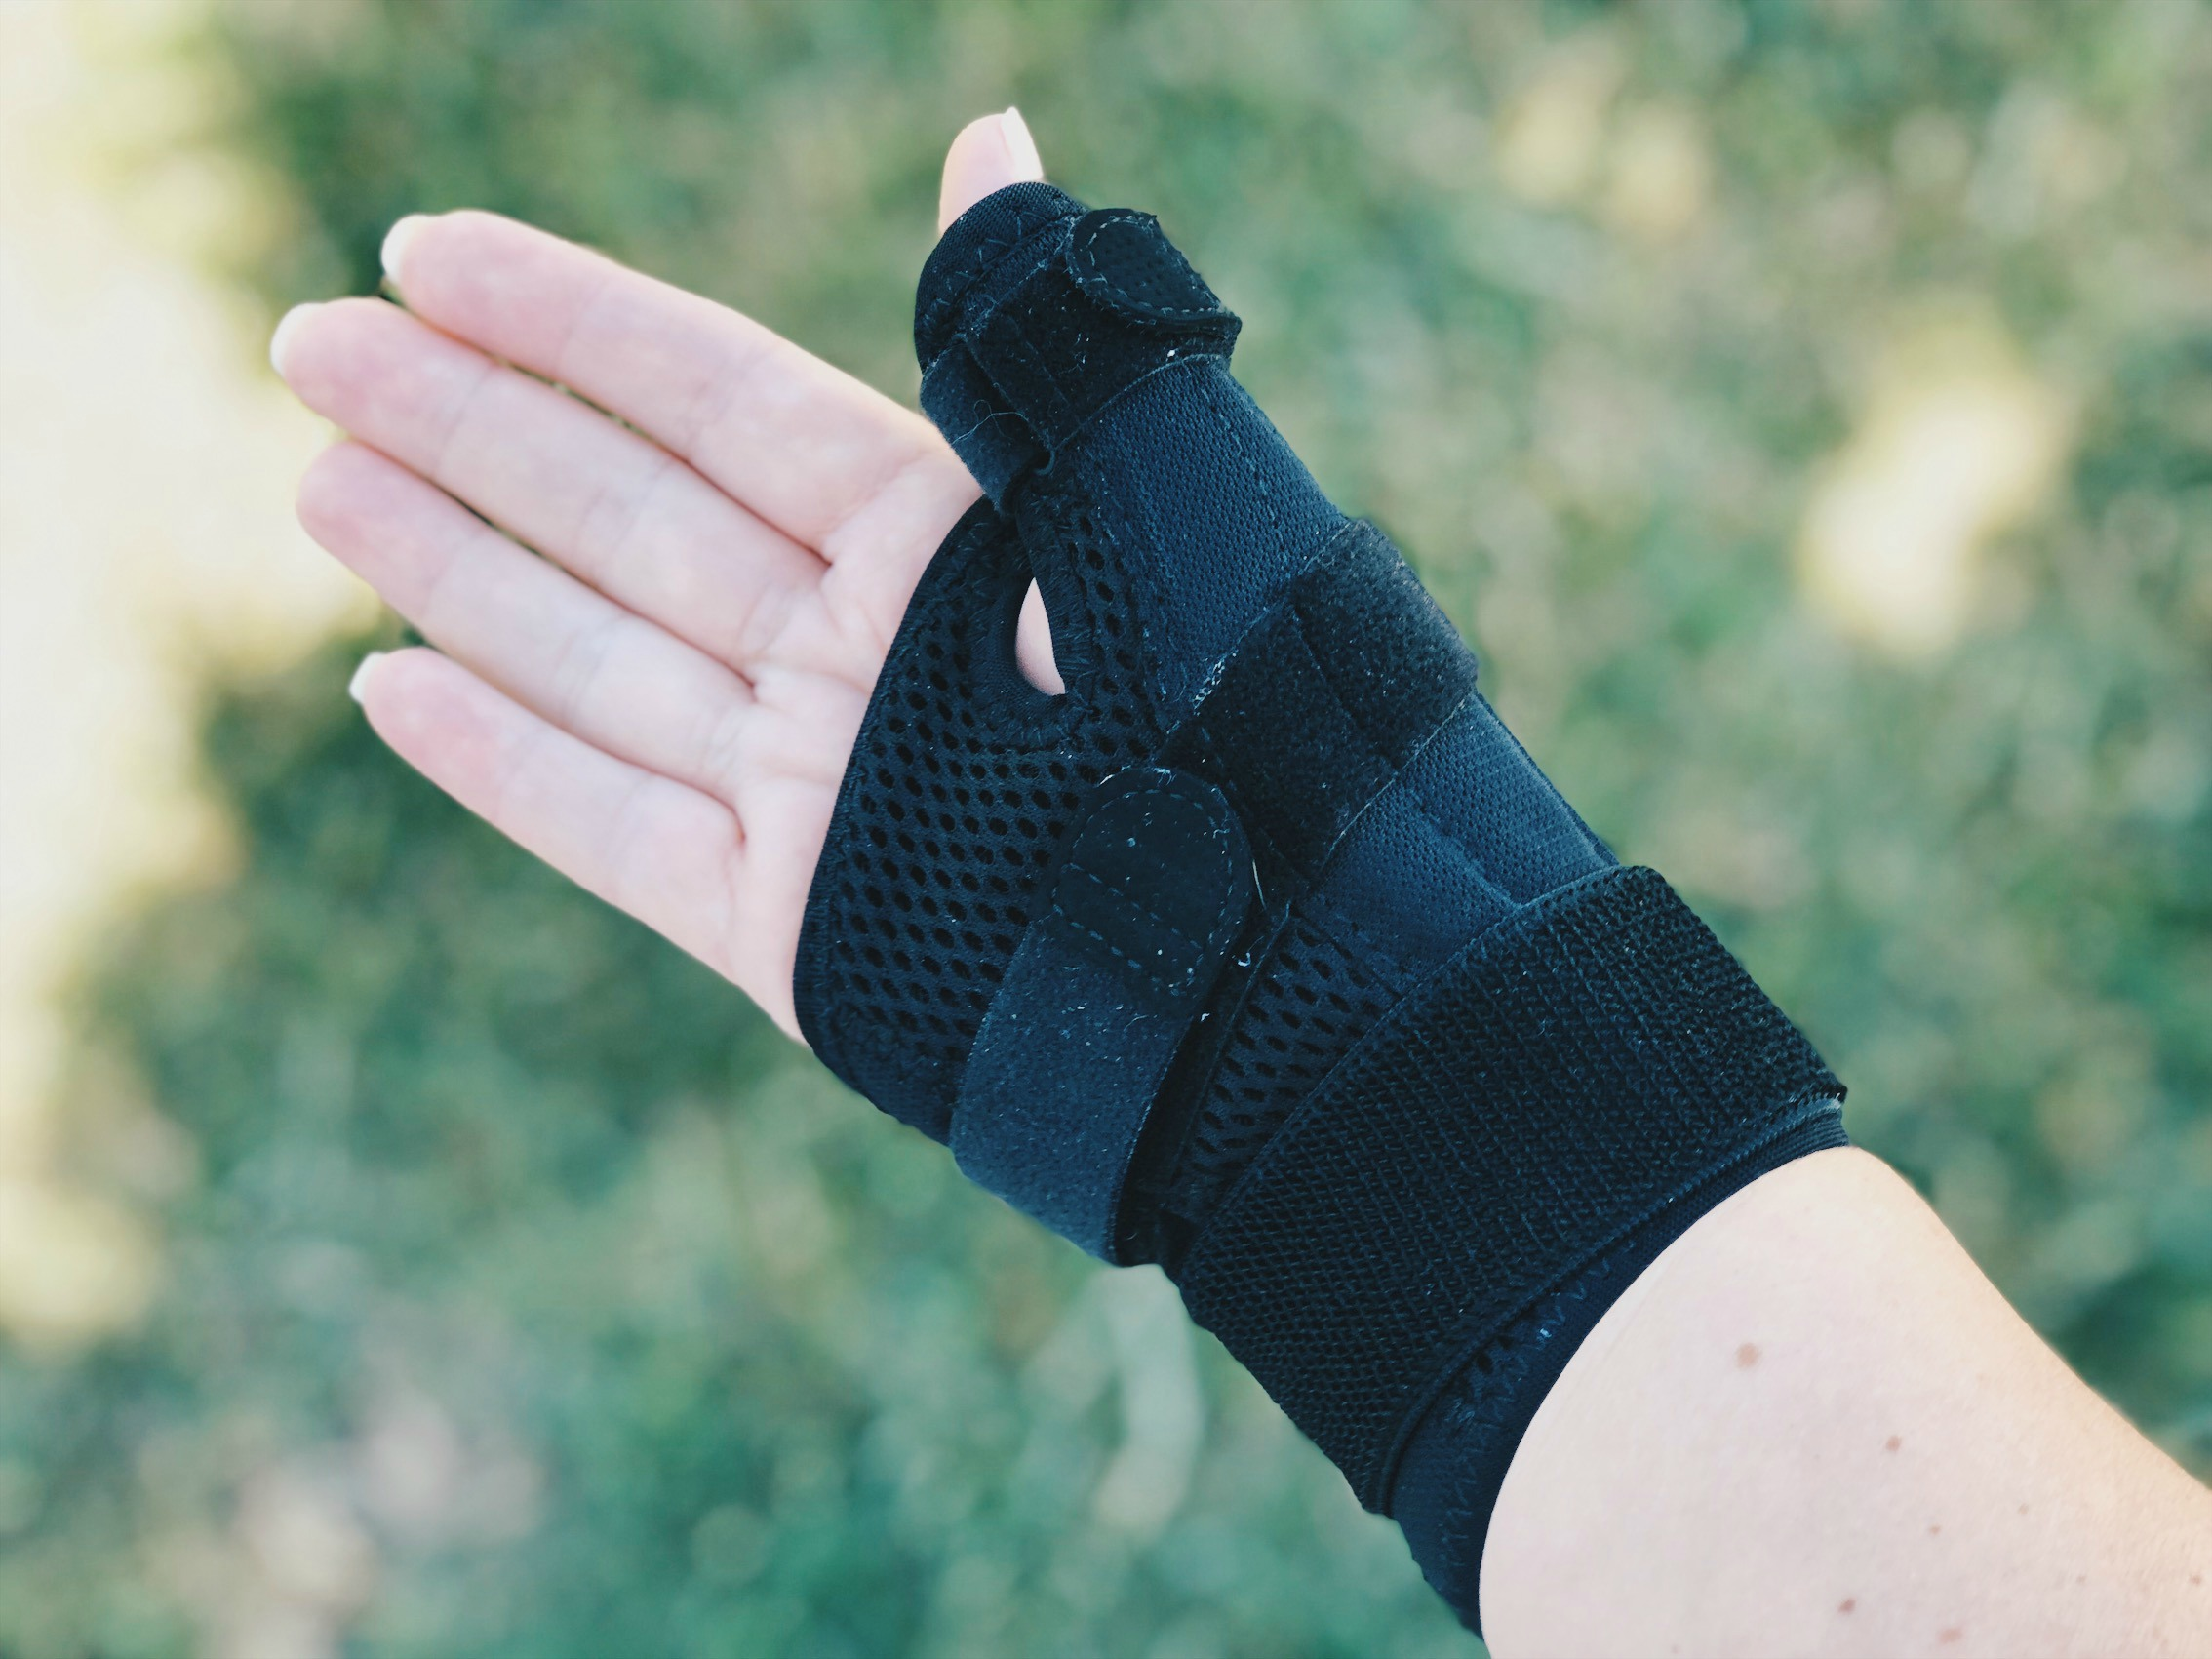 The rest of the trip I used this brace in order to keep my thumb still and let it heal.